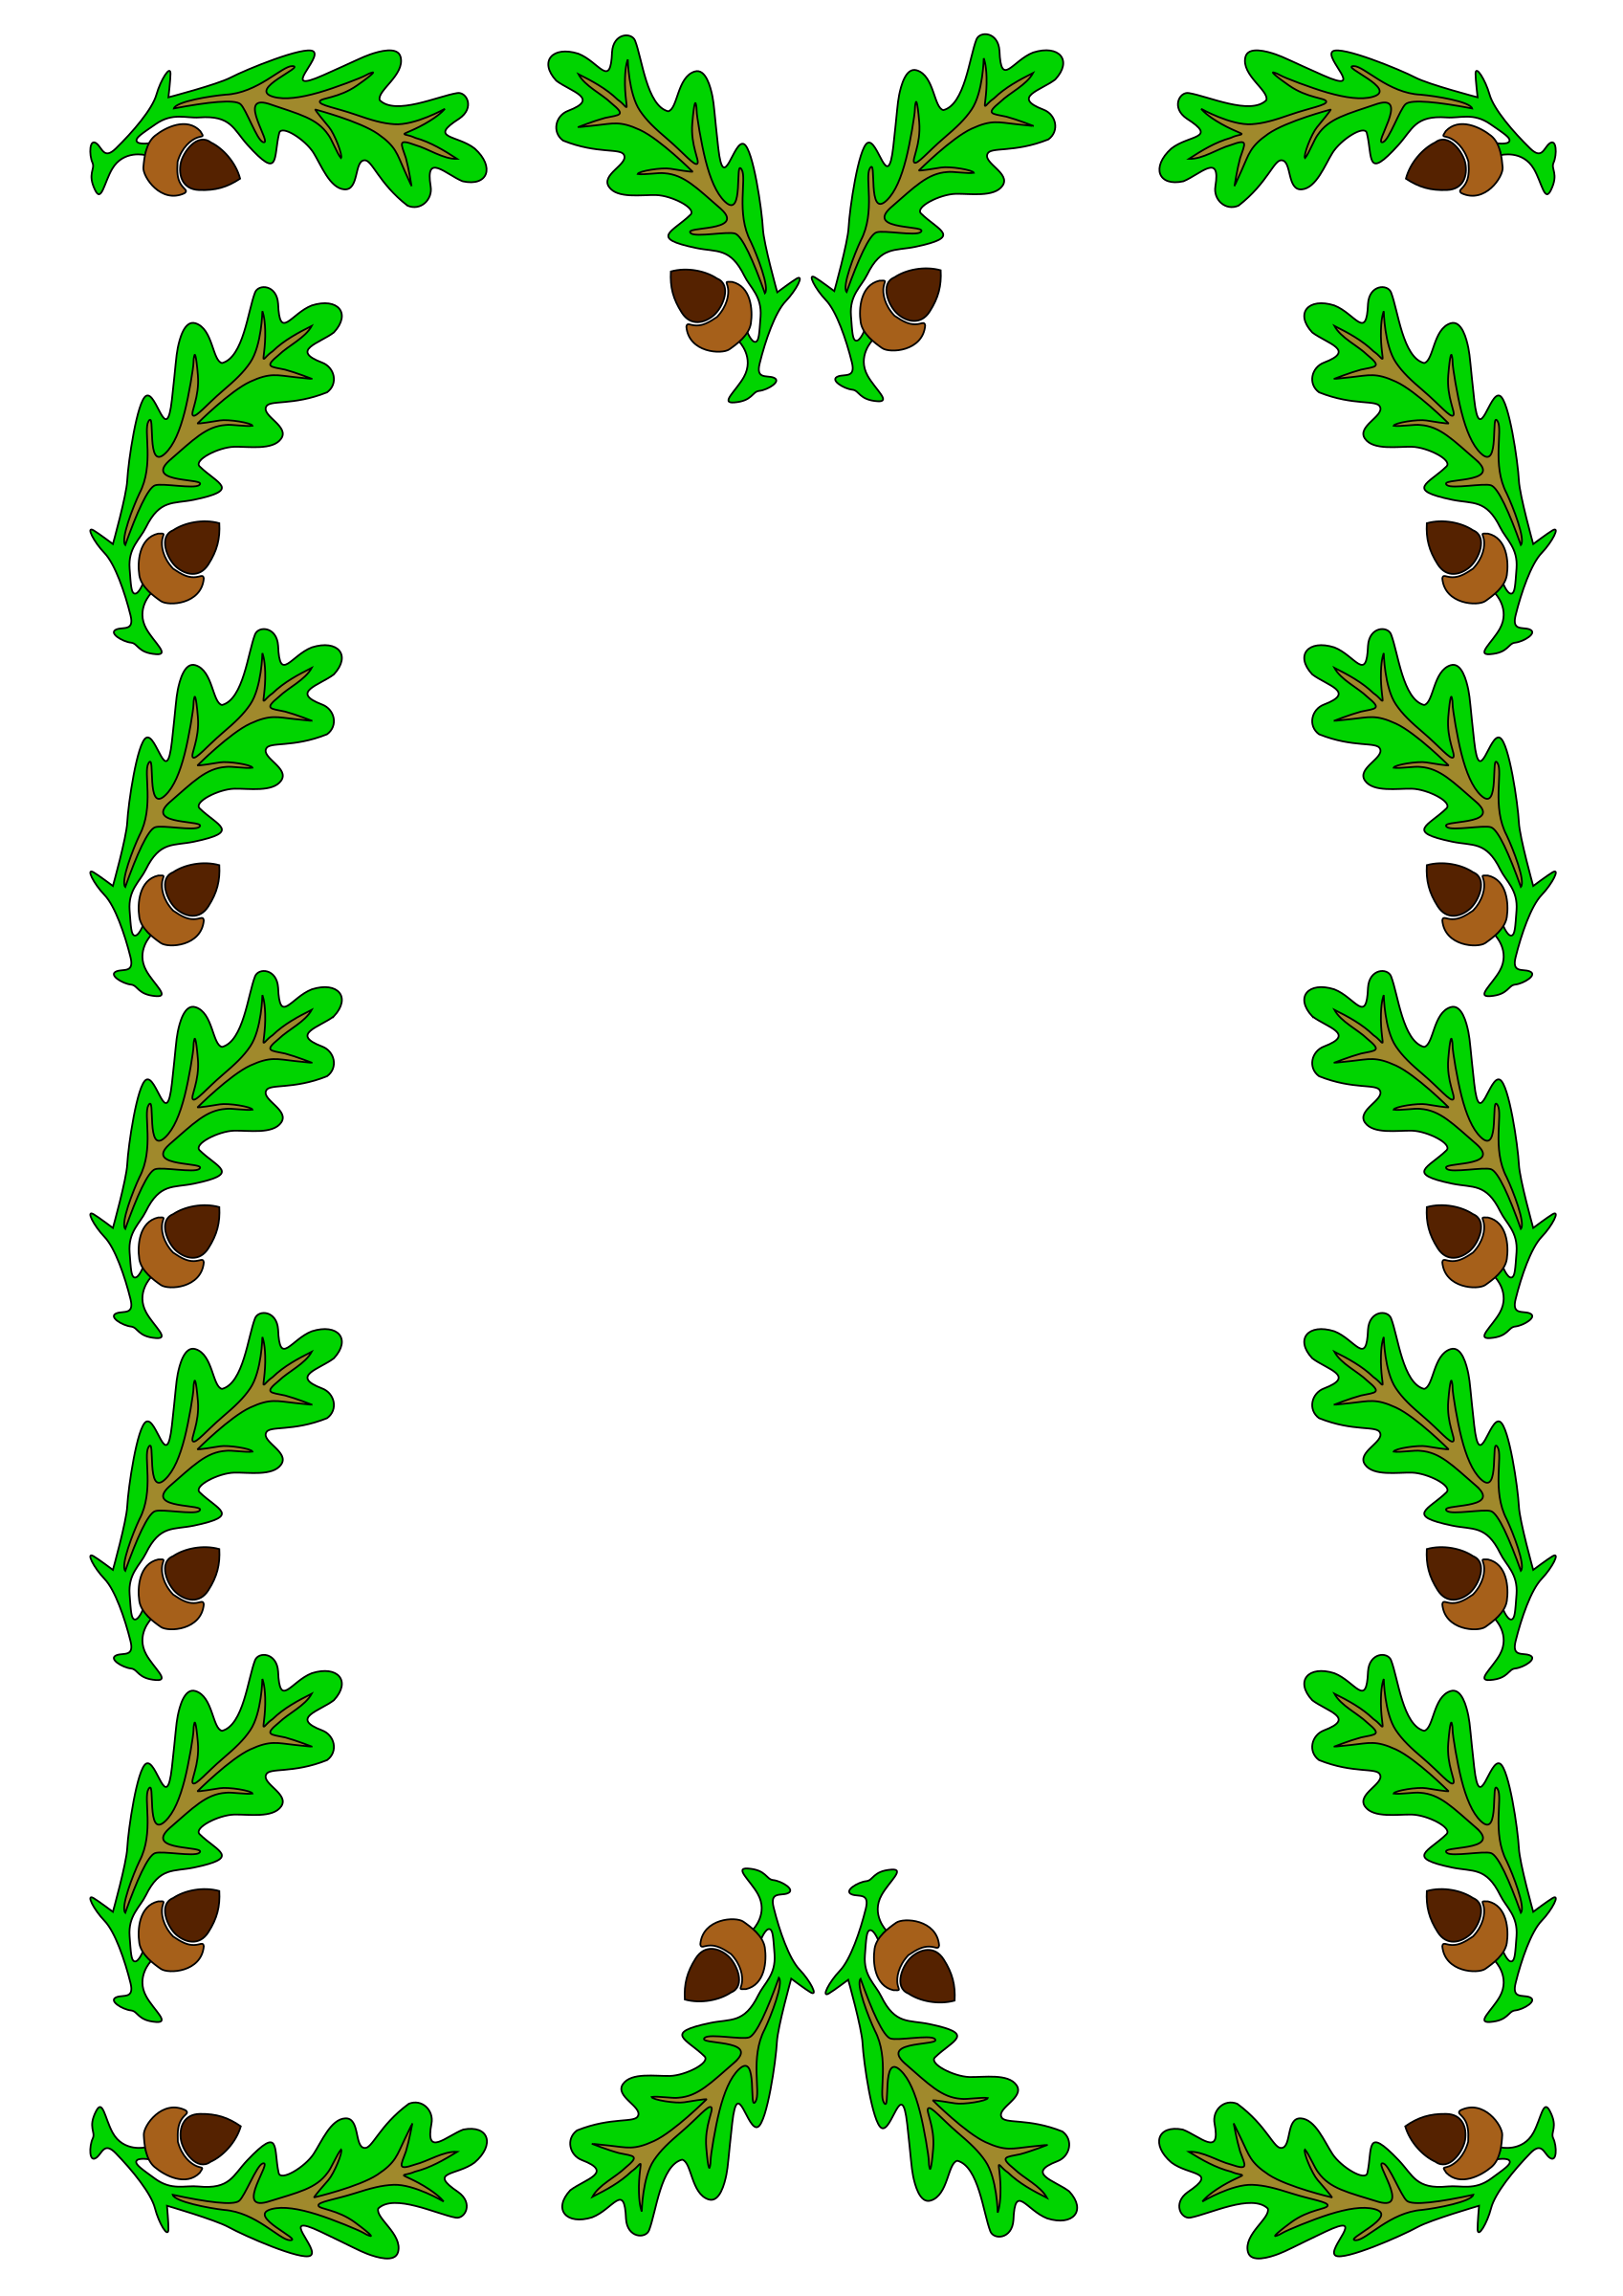 Clipart - oak leaf